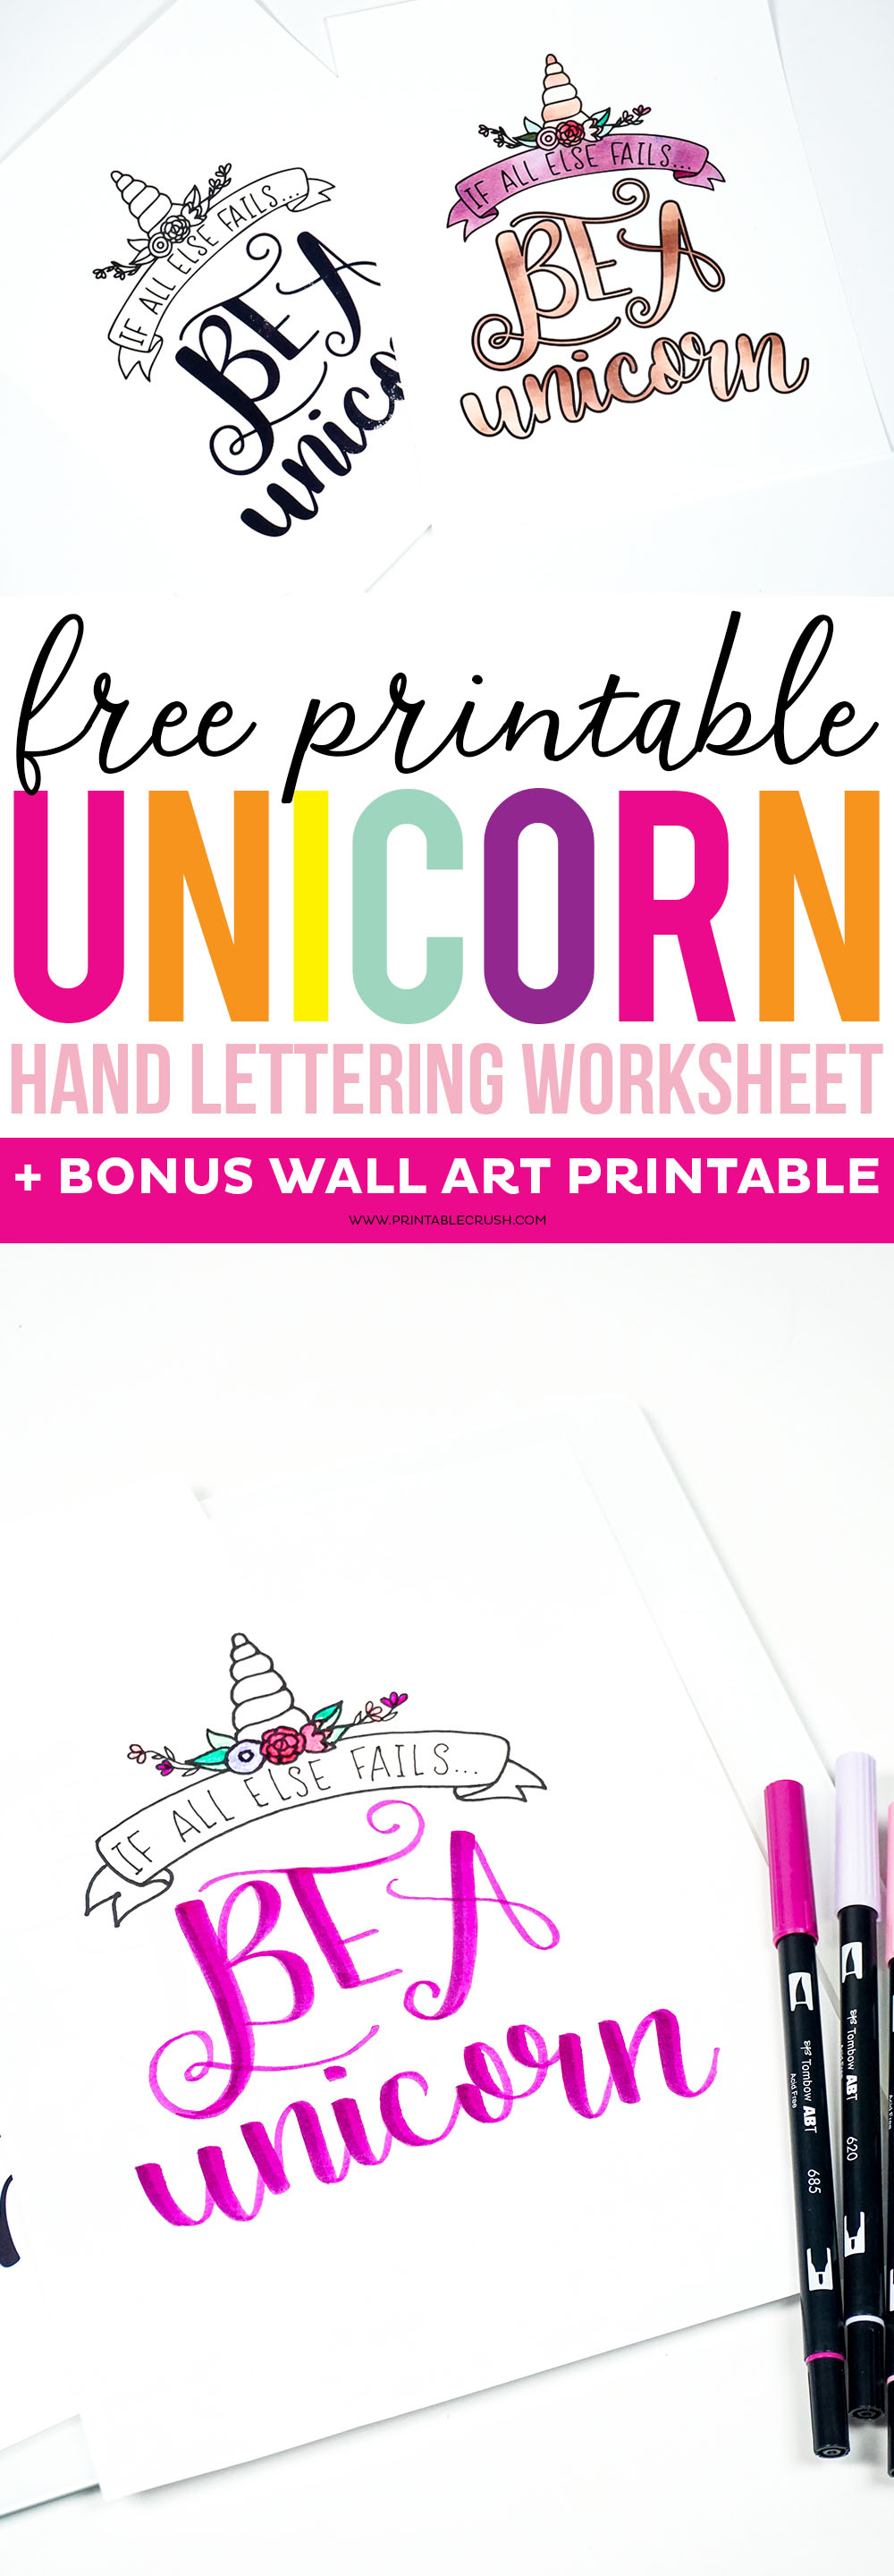 Get this FREE Printable Unicorn Hand Lettering Worksheet and Wall Art. Practice your lettering, and remember you can always fall back on being a unicorn.